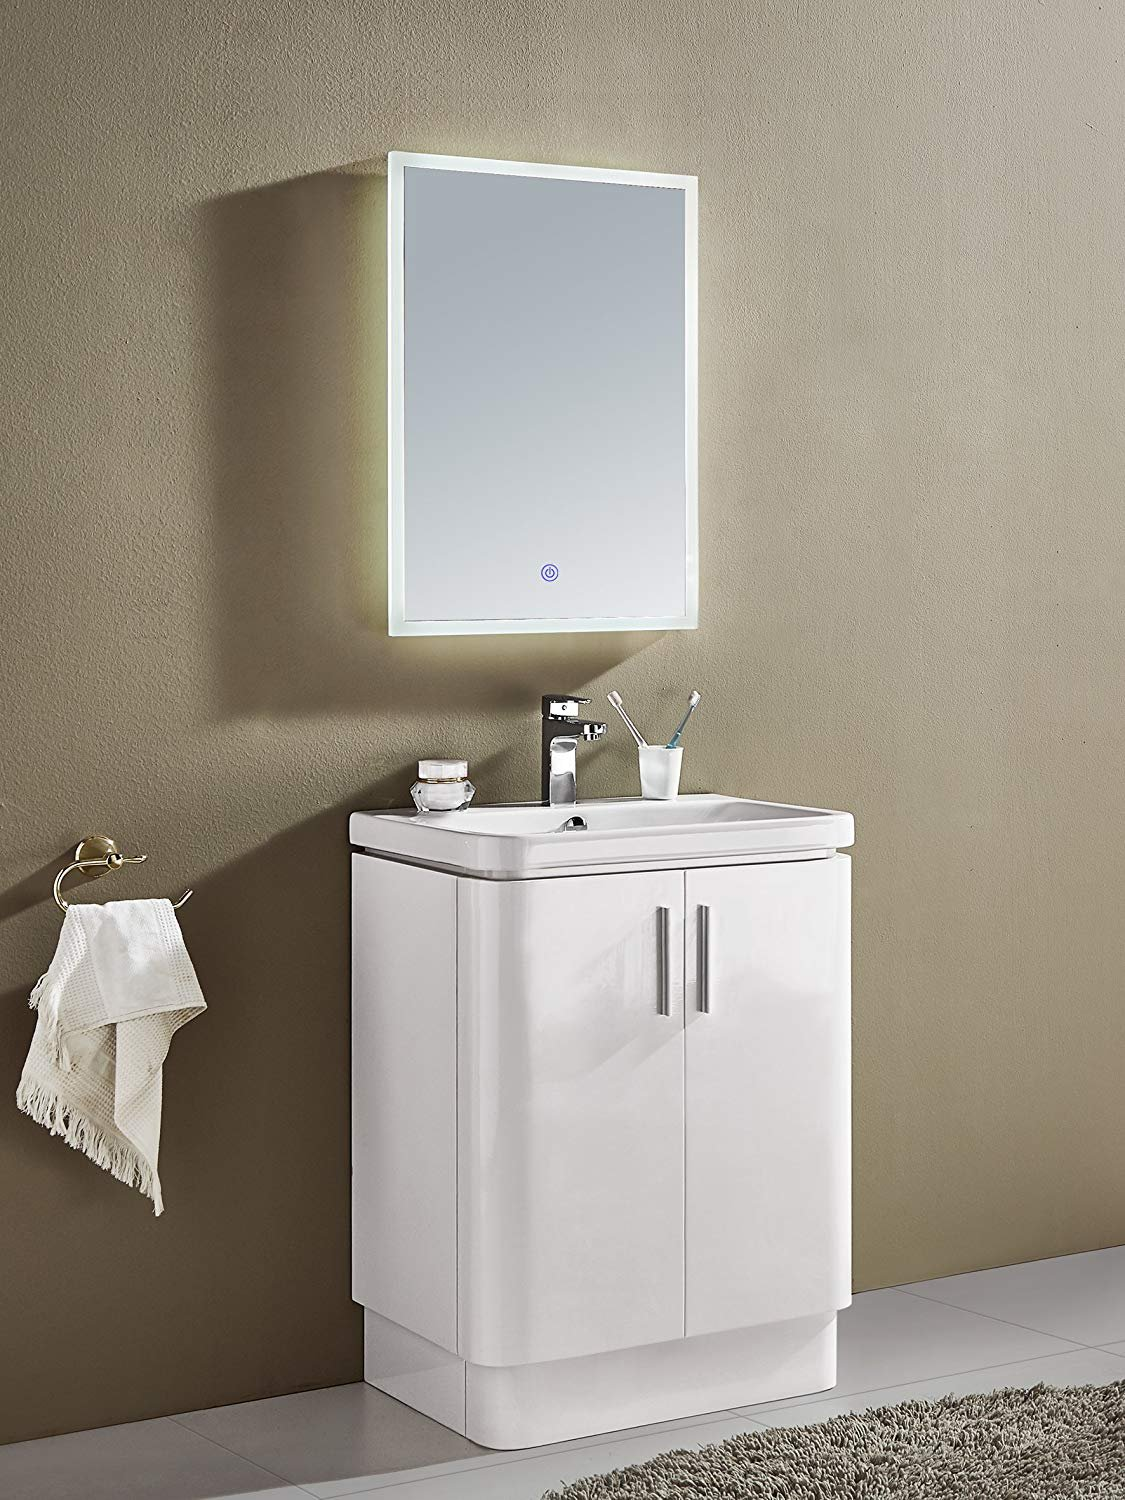 GRACIAS HOME Illuminated Led Bathroom Mirror with Lights,500mm X 700mm, Demister Pad & Touch Switch, LIM01.Toliet Mirror,Cloakromm Mirror, Bathroom Vanity Mirror,Contemporary Bathroom Mirror